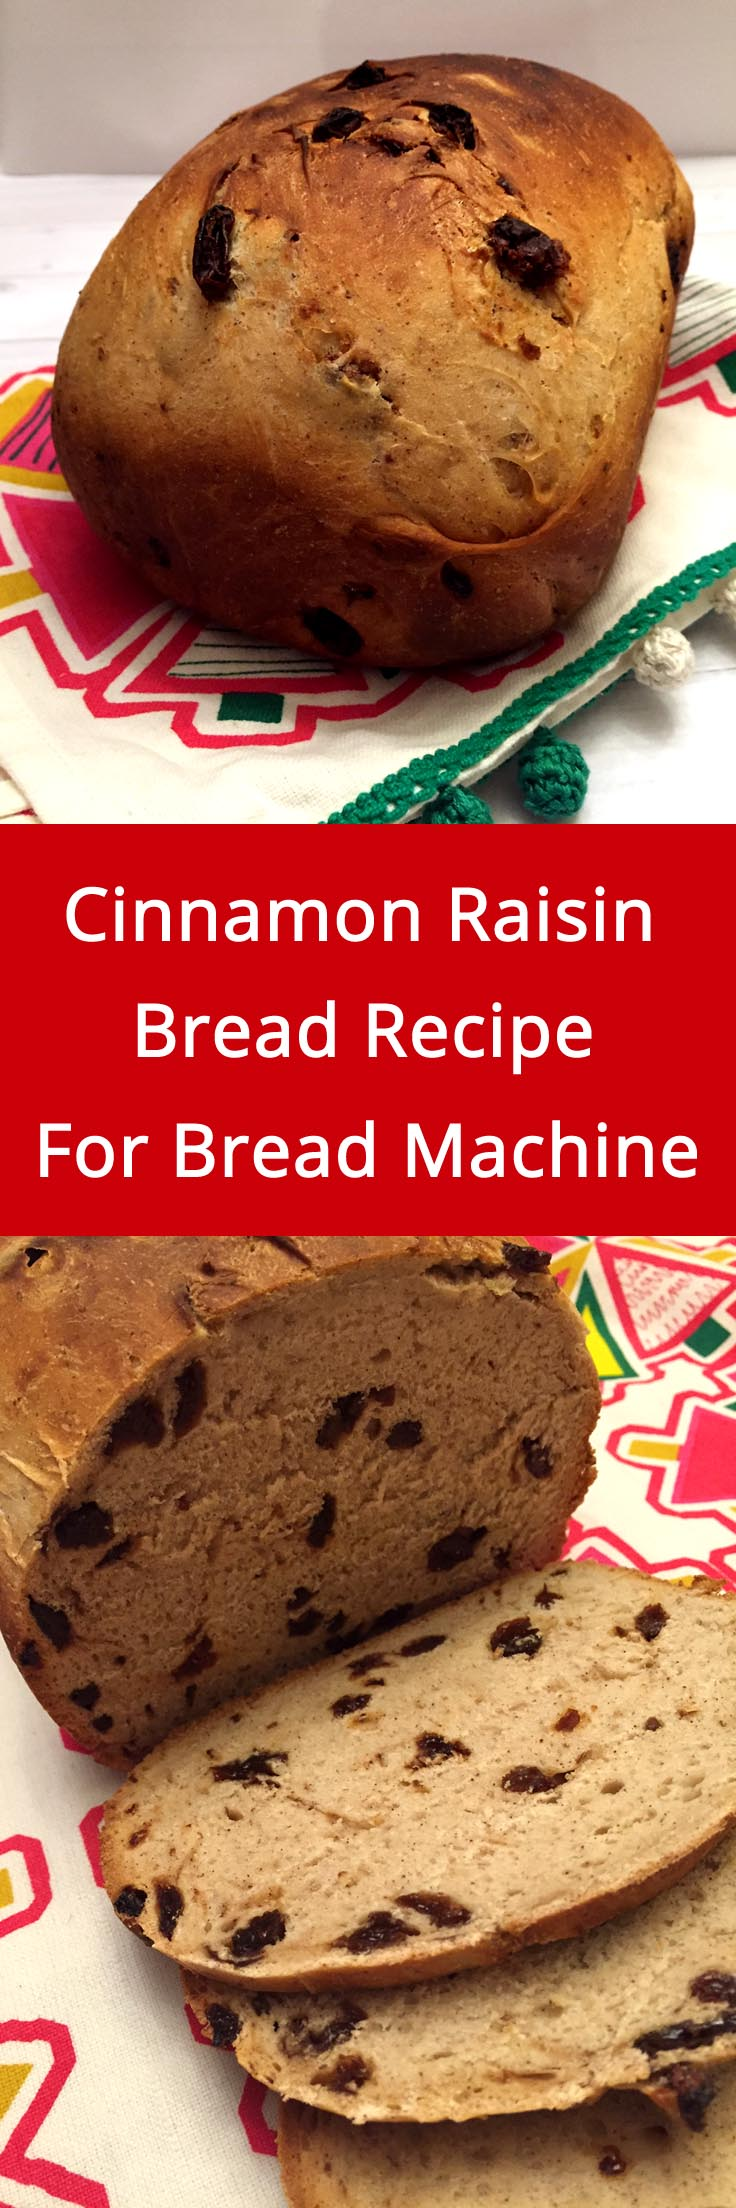 raisin bread bread machine